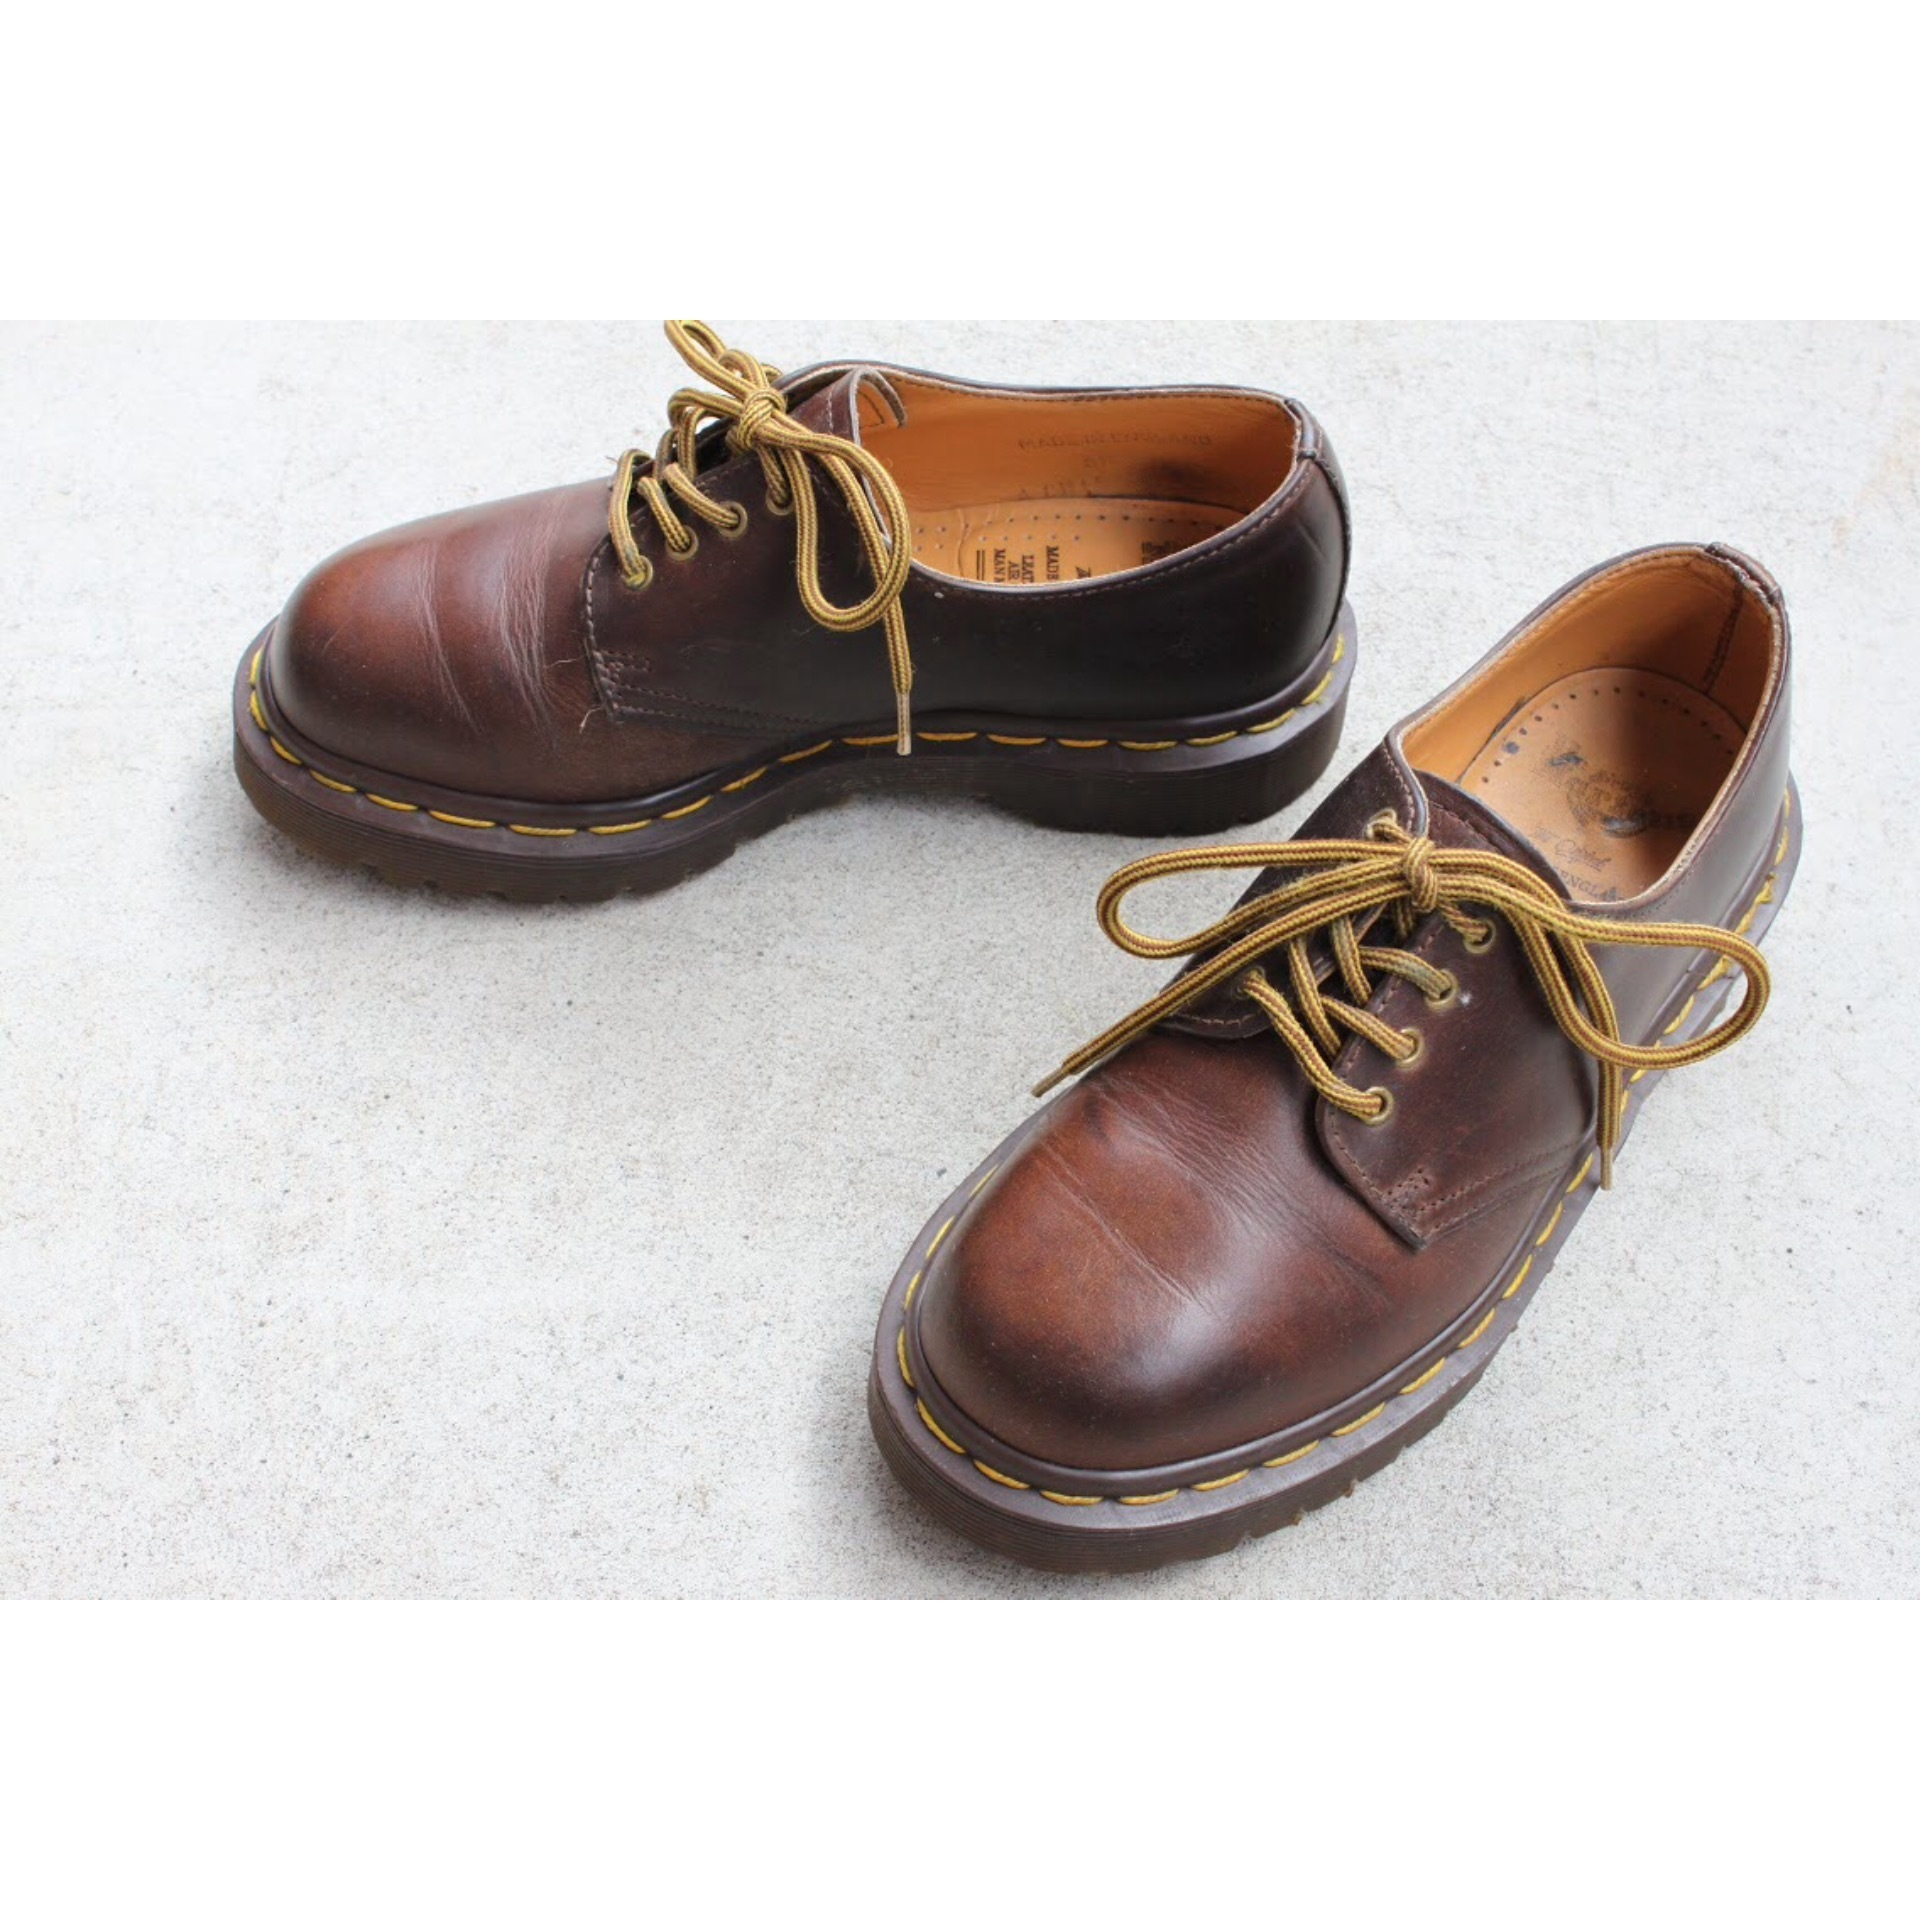 Dr. Martens 4 hole shoes Made in England size 3